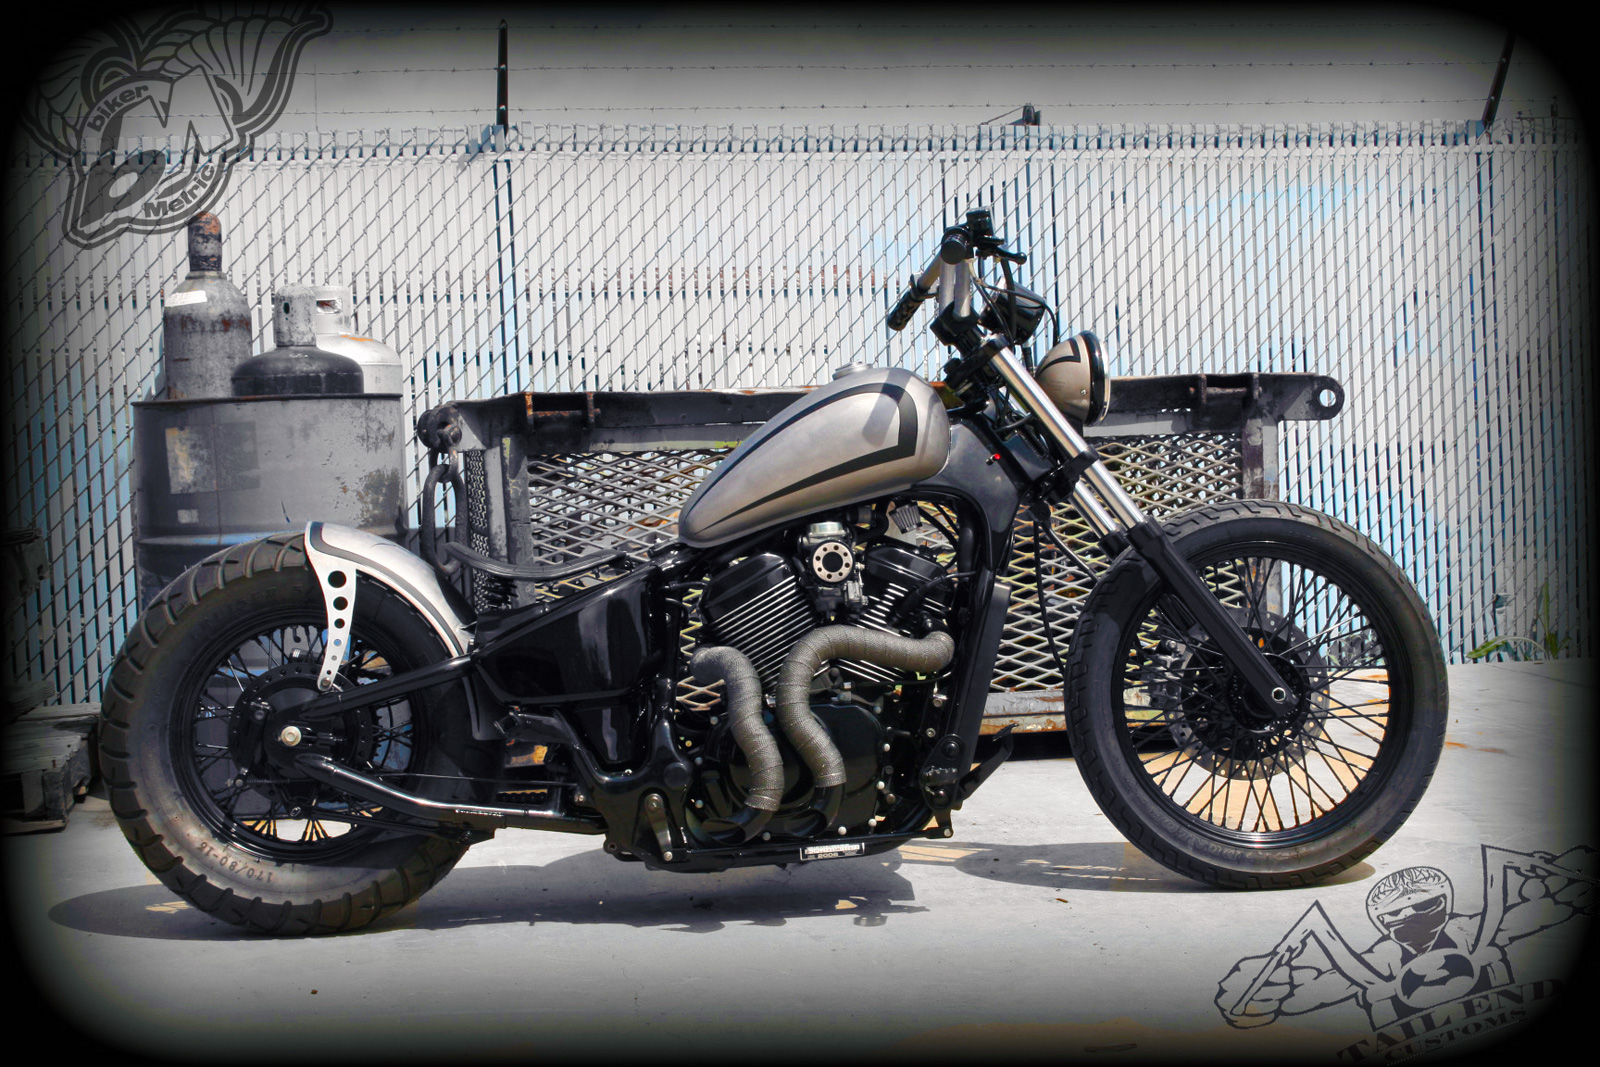 Joey S Vlx600 Bobber Tail End Customs Bikermetric